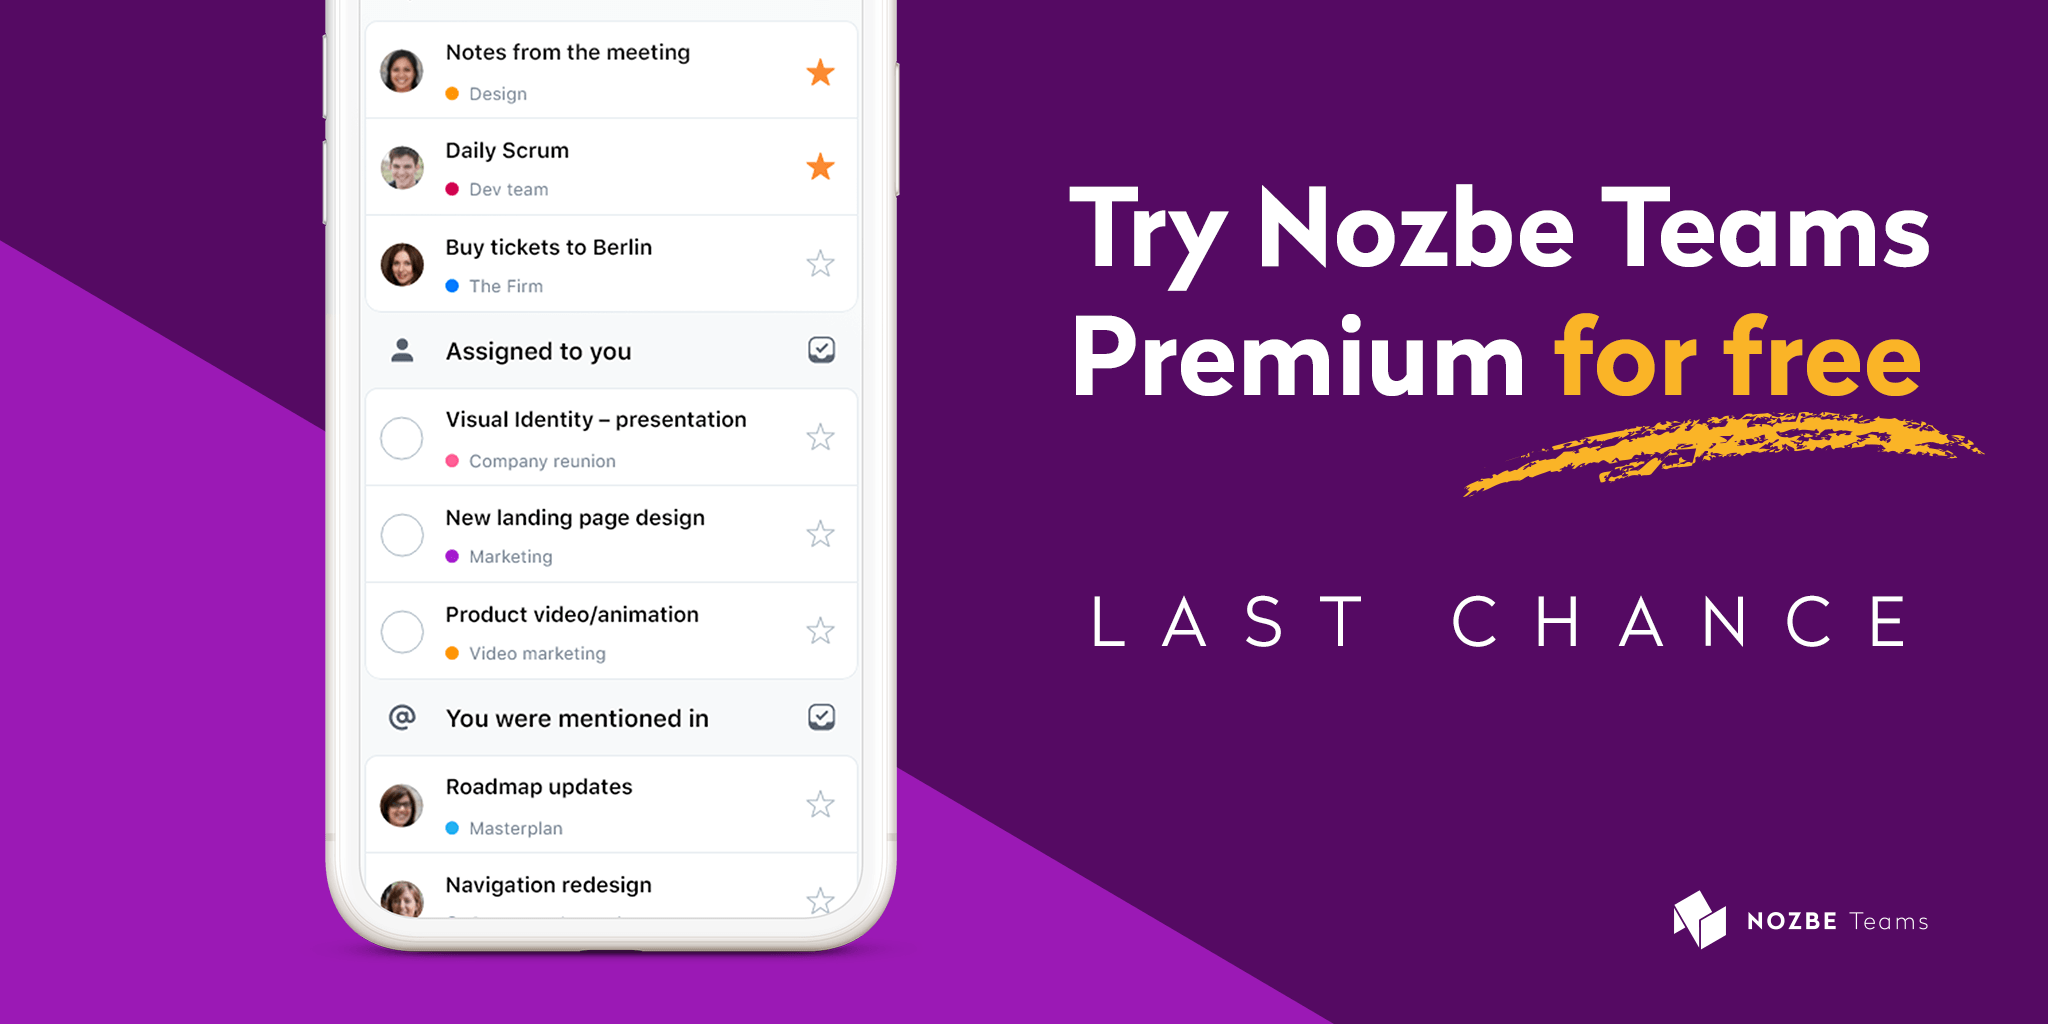 The last chance to use Nozbe Teams Premium for free